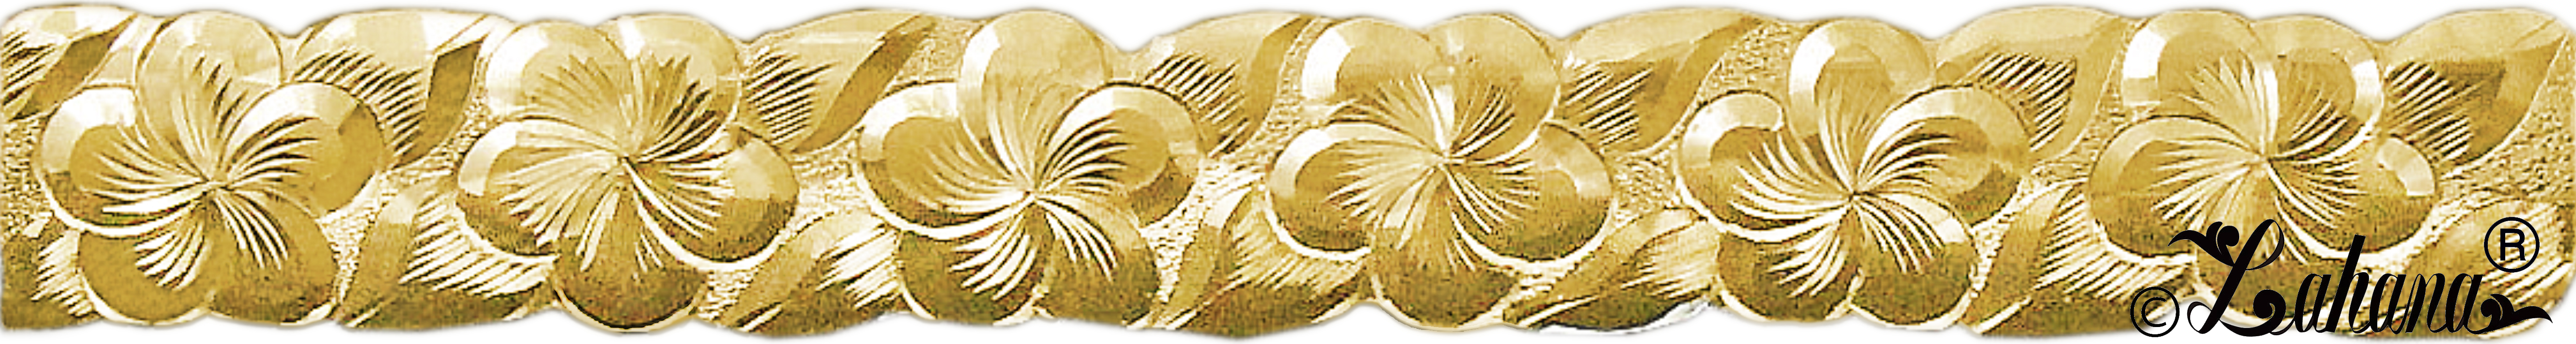 14k-sample-logo-ad-j.jpg